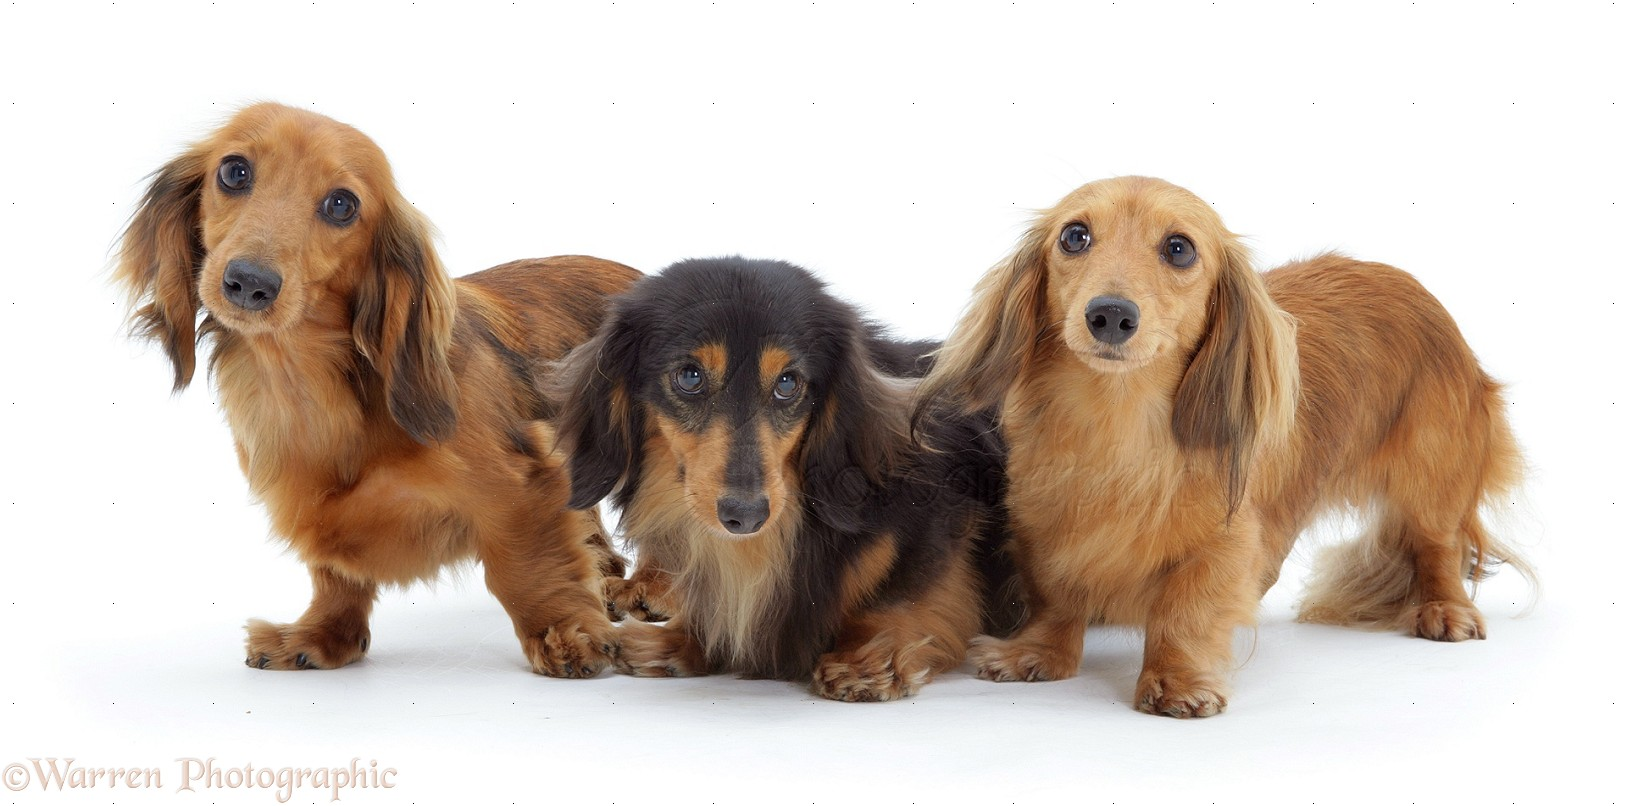 Dogs Three Miniature Longhaired Dachshunds Photo Wp09466